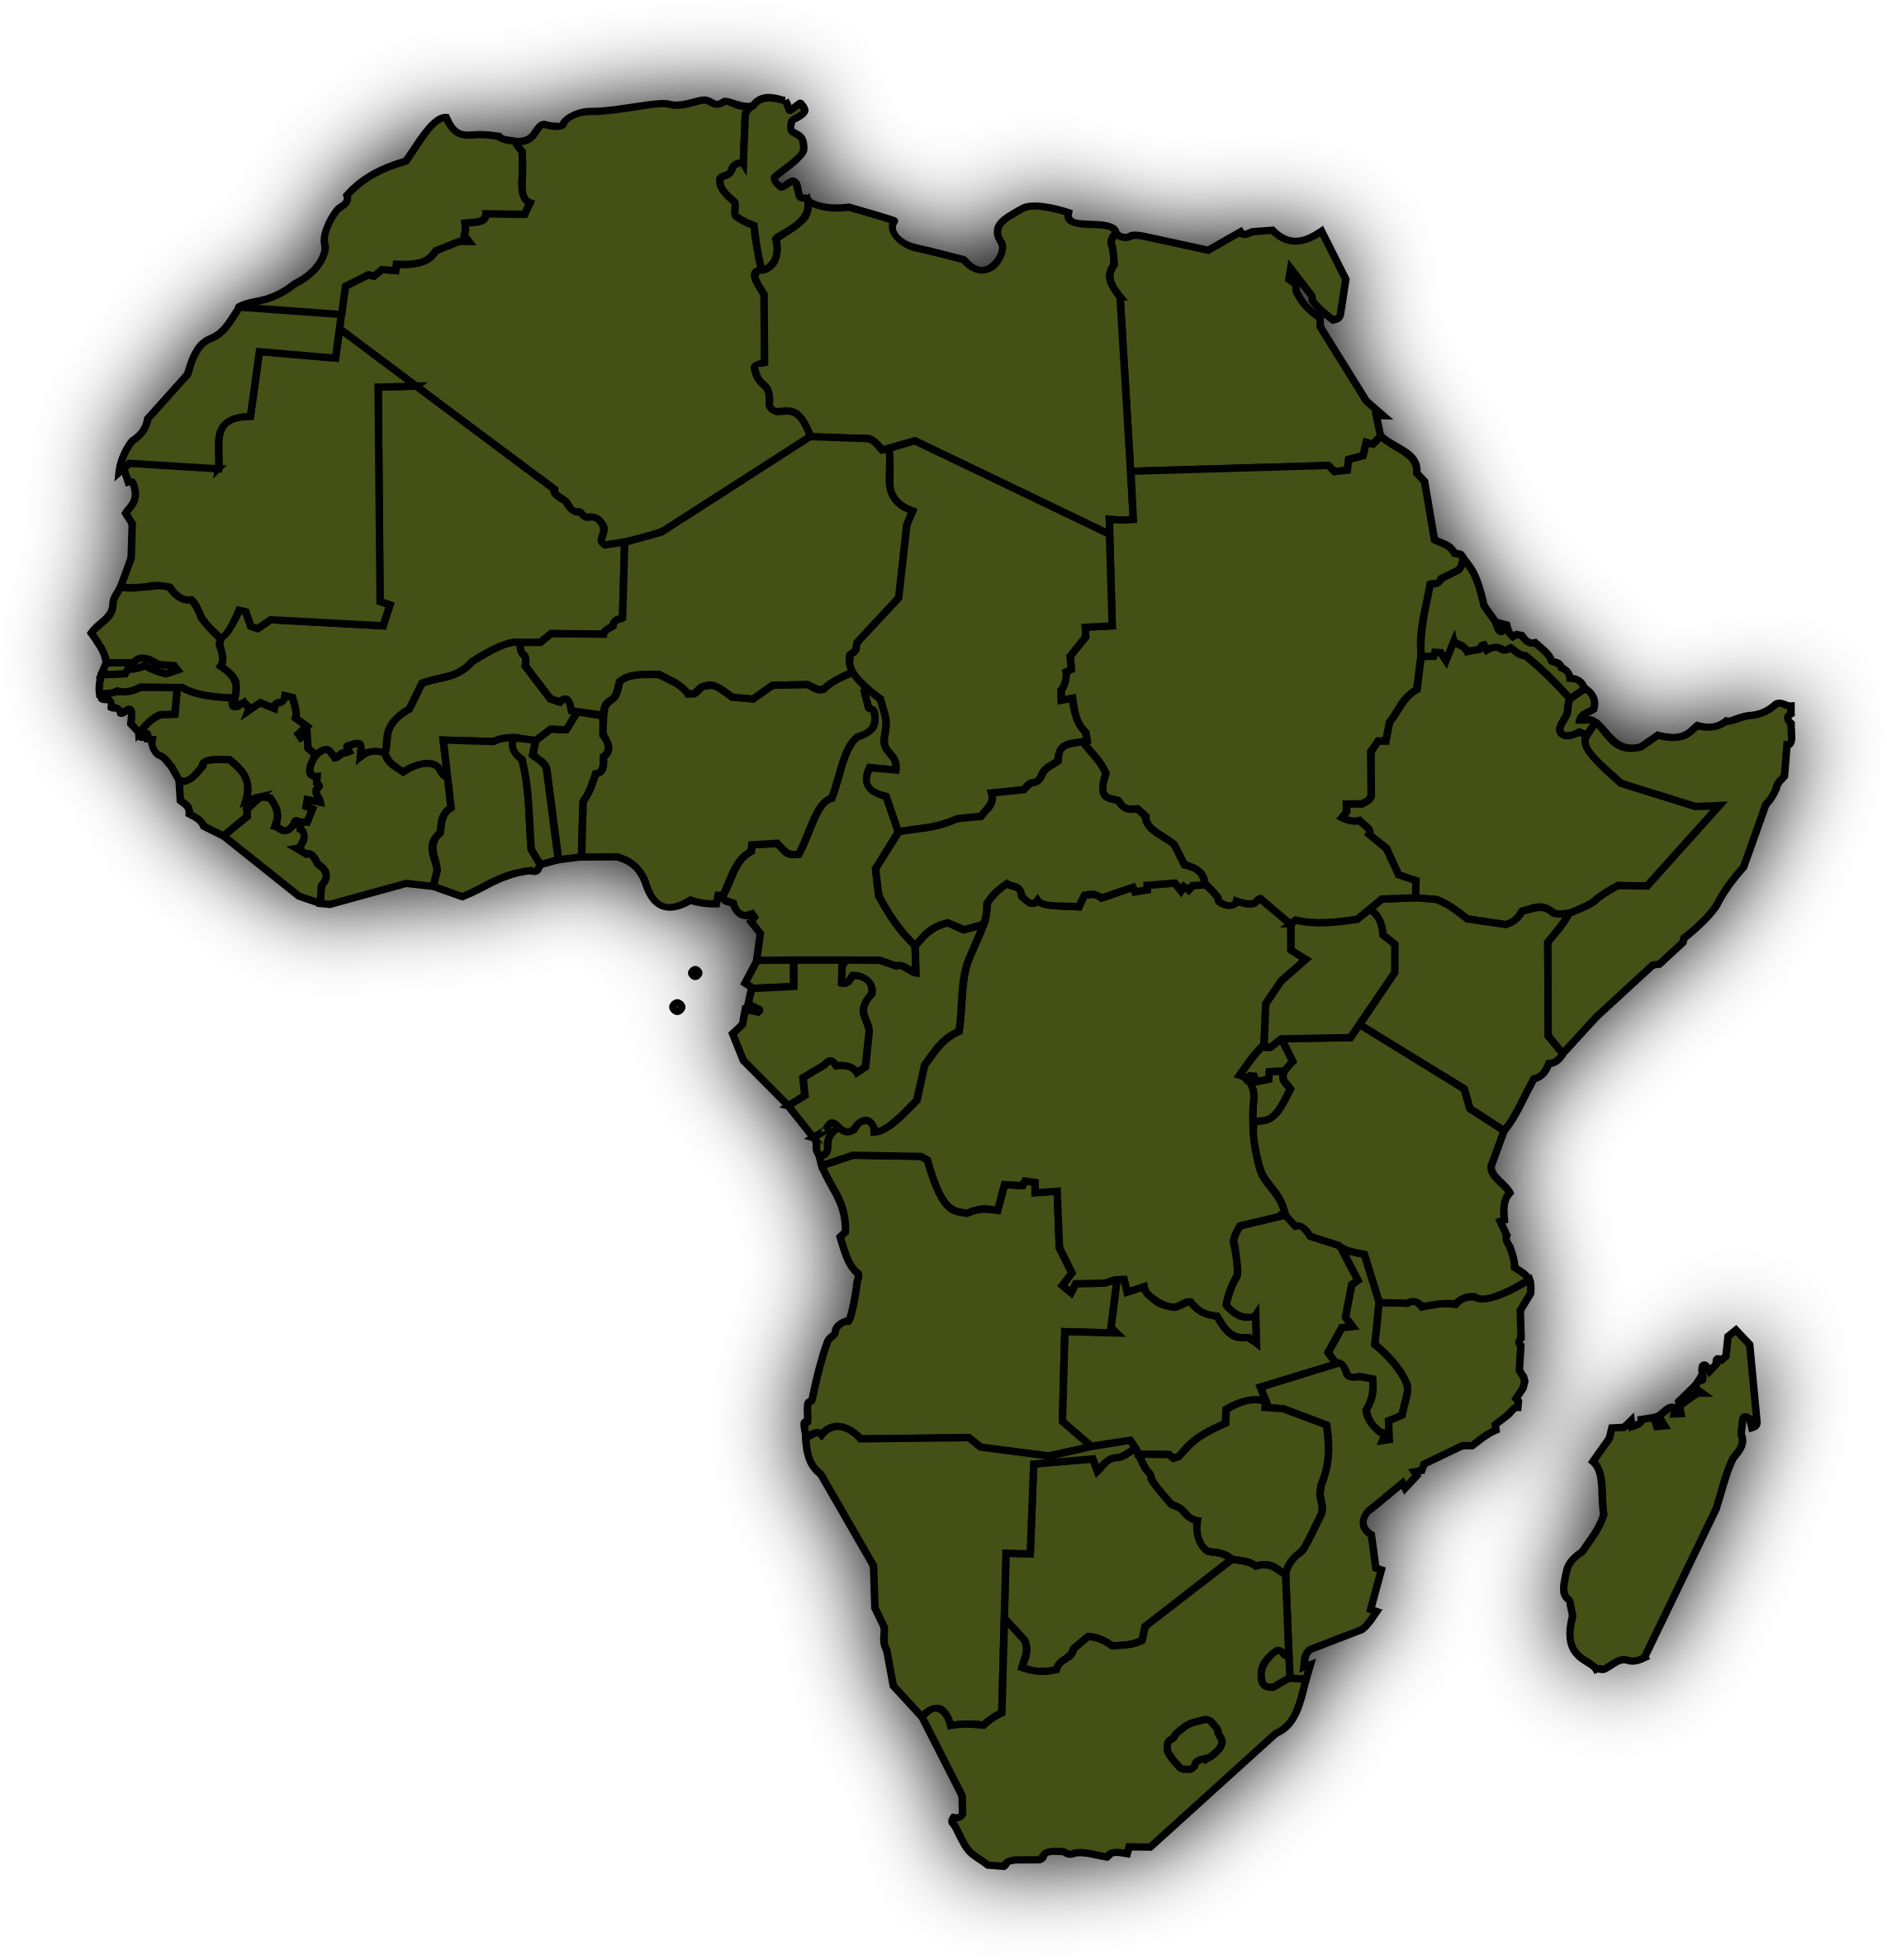 Africa map png. Basic icons free and